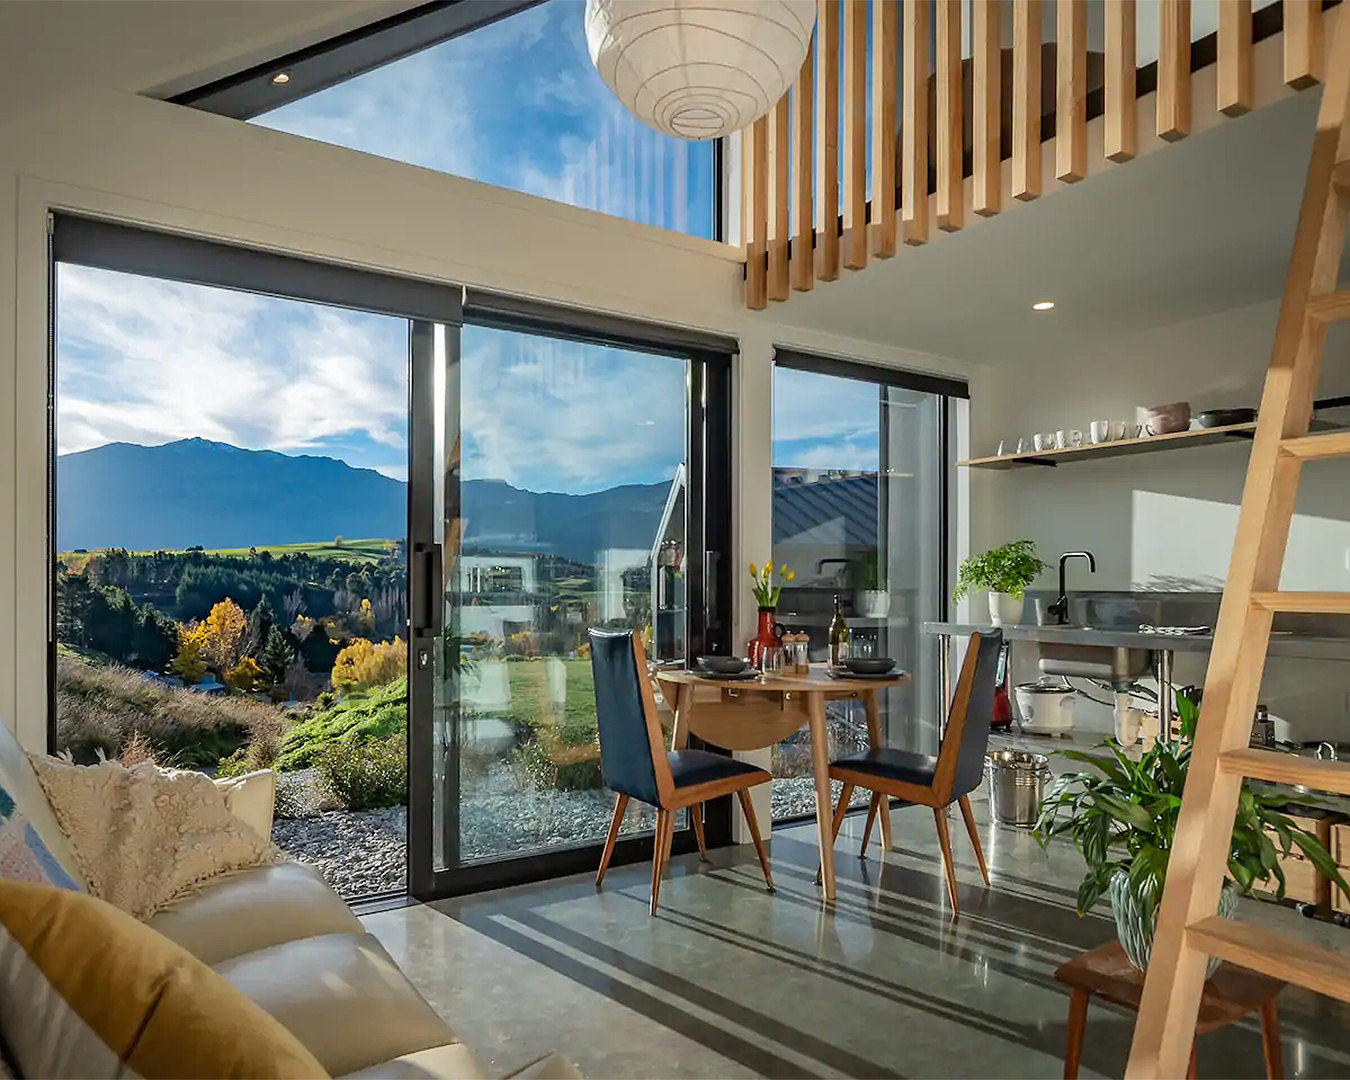 The interior of the Kiwi Chalet in Otago.